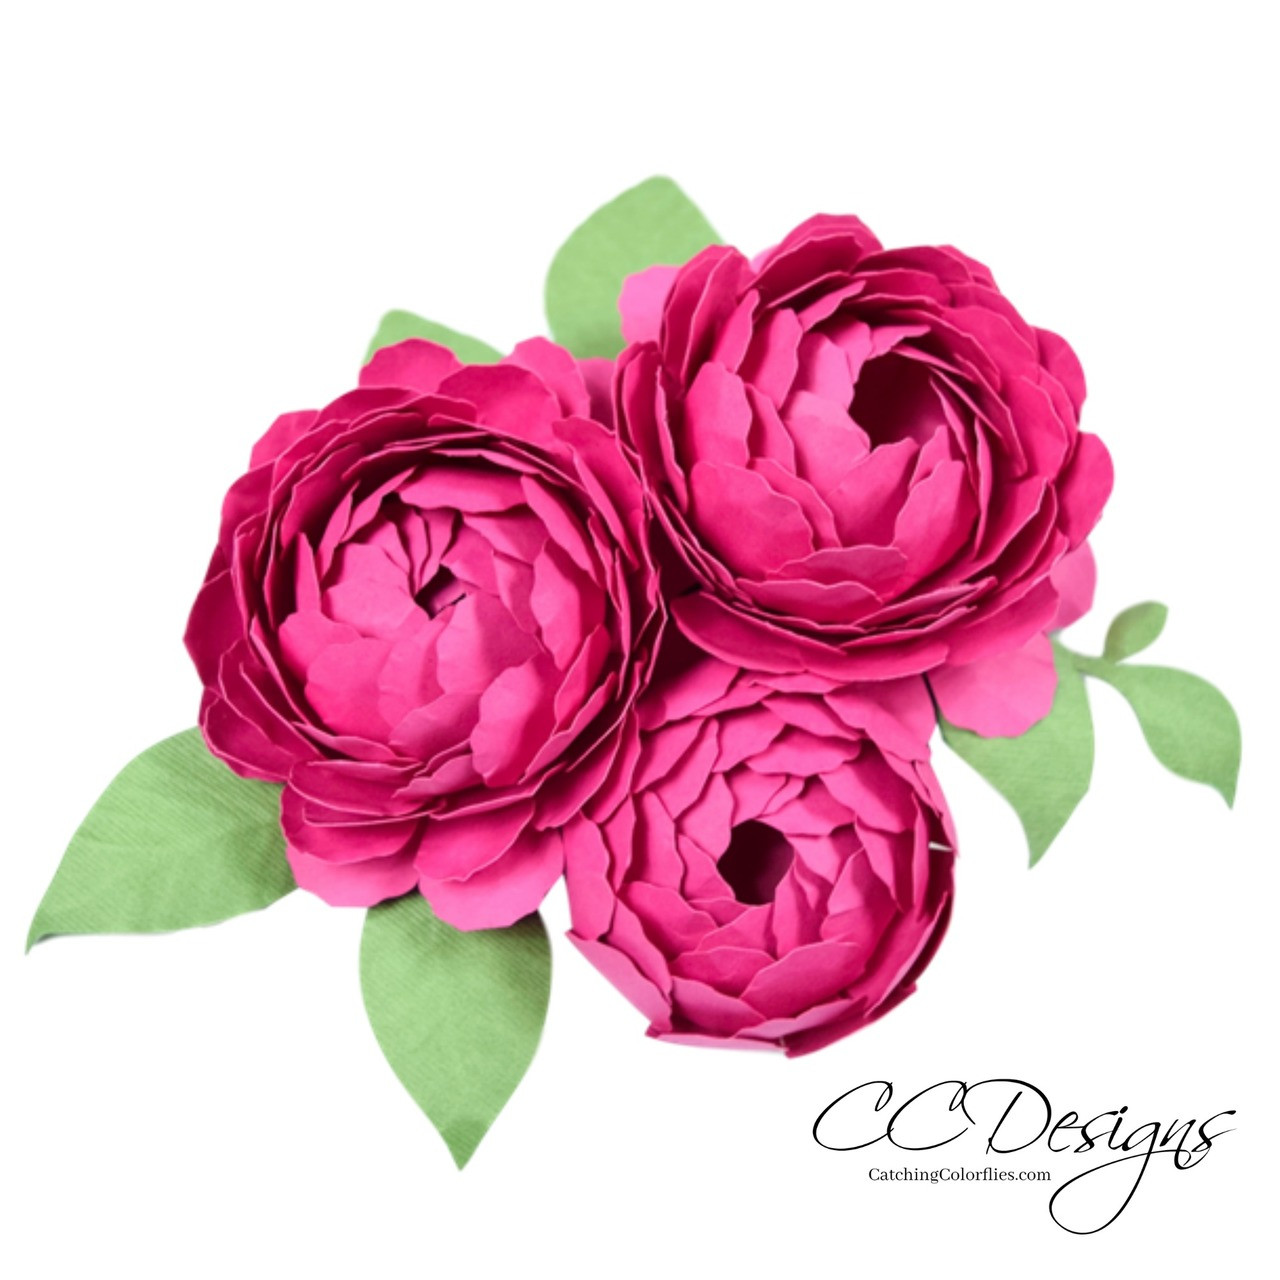 Set Of 2 Dahlia And Peony Paper Flower Template Catching Colorflies